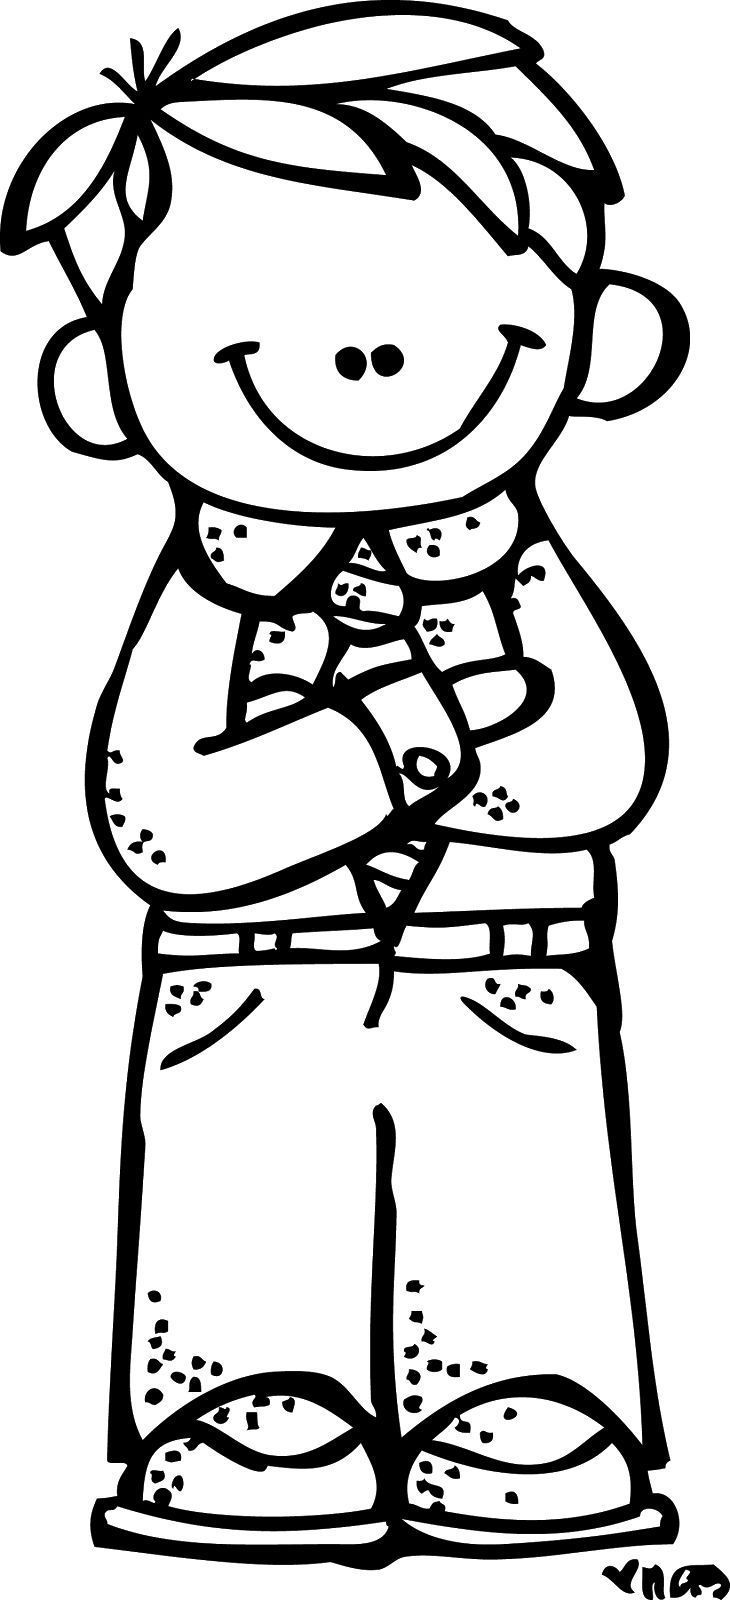 Boy And Girl Clipart Church Primary Lds Coloring Pages Lds Coloring Pages Clip Art Coloring Pages